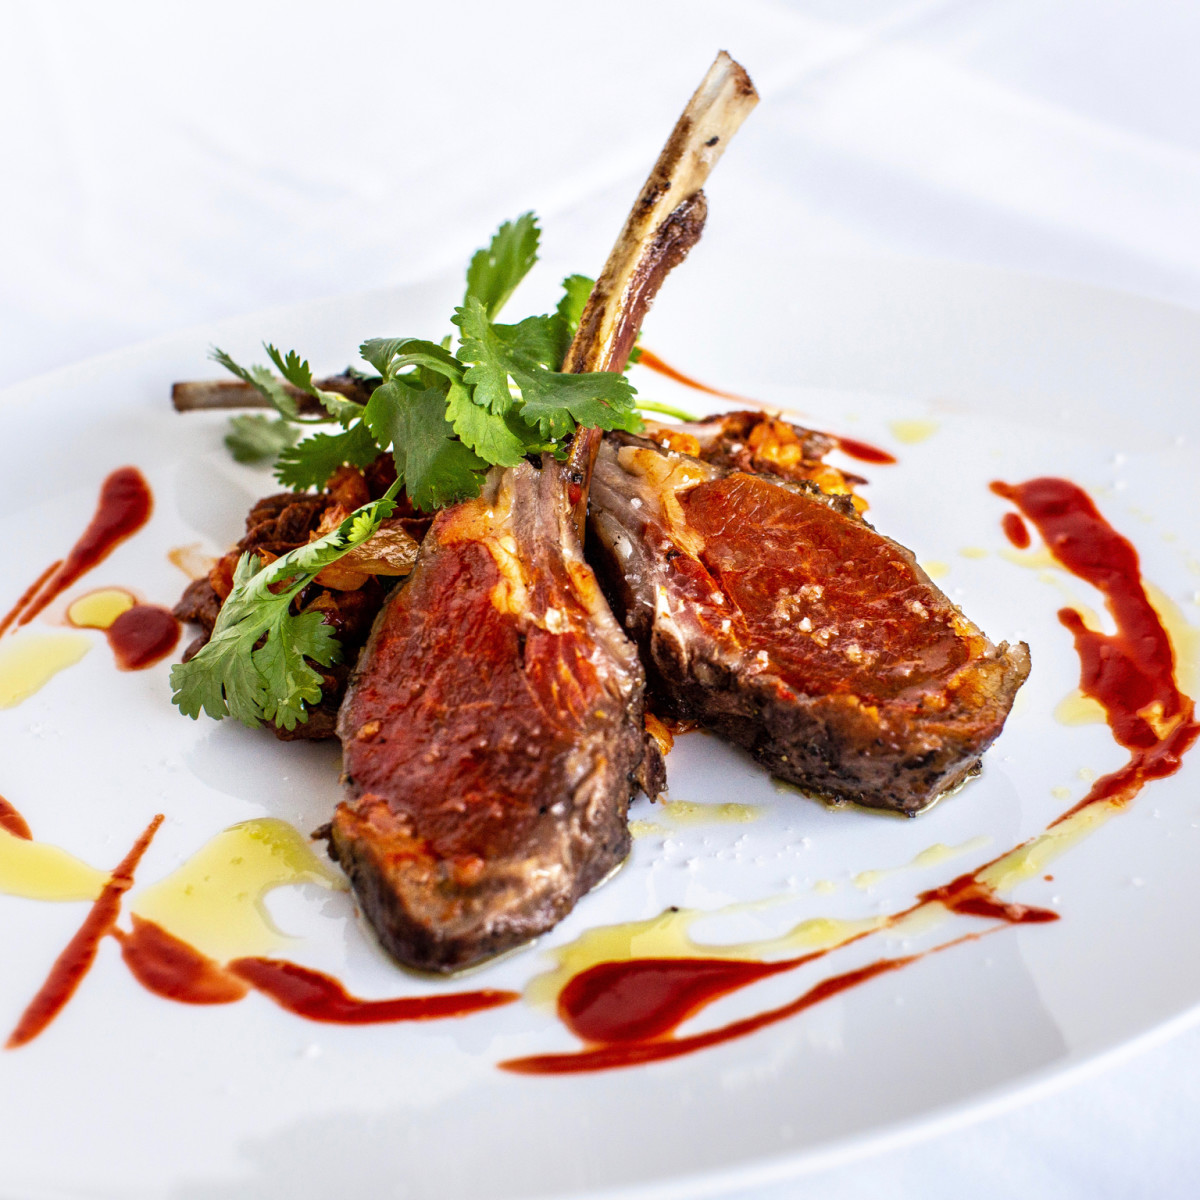 The Annie Cafe lamb chops